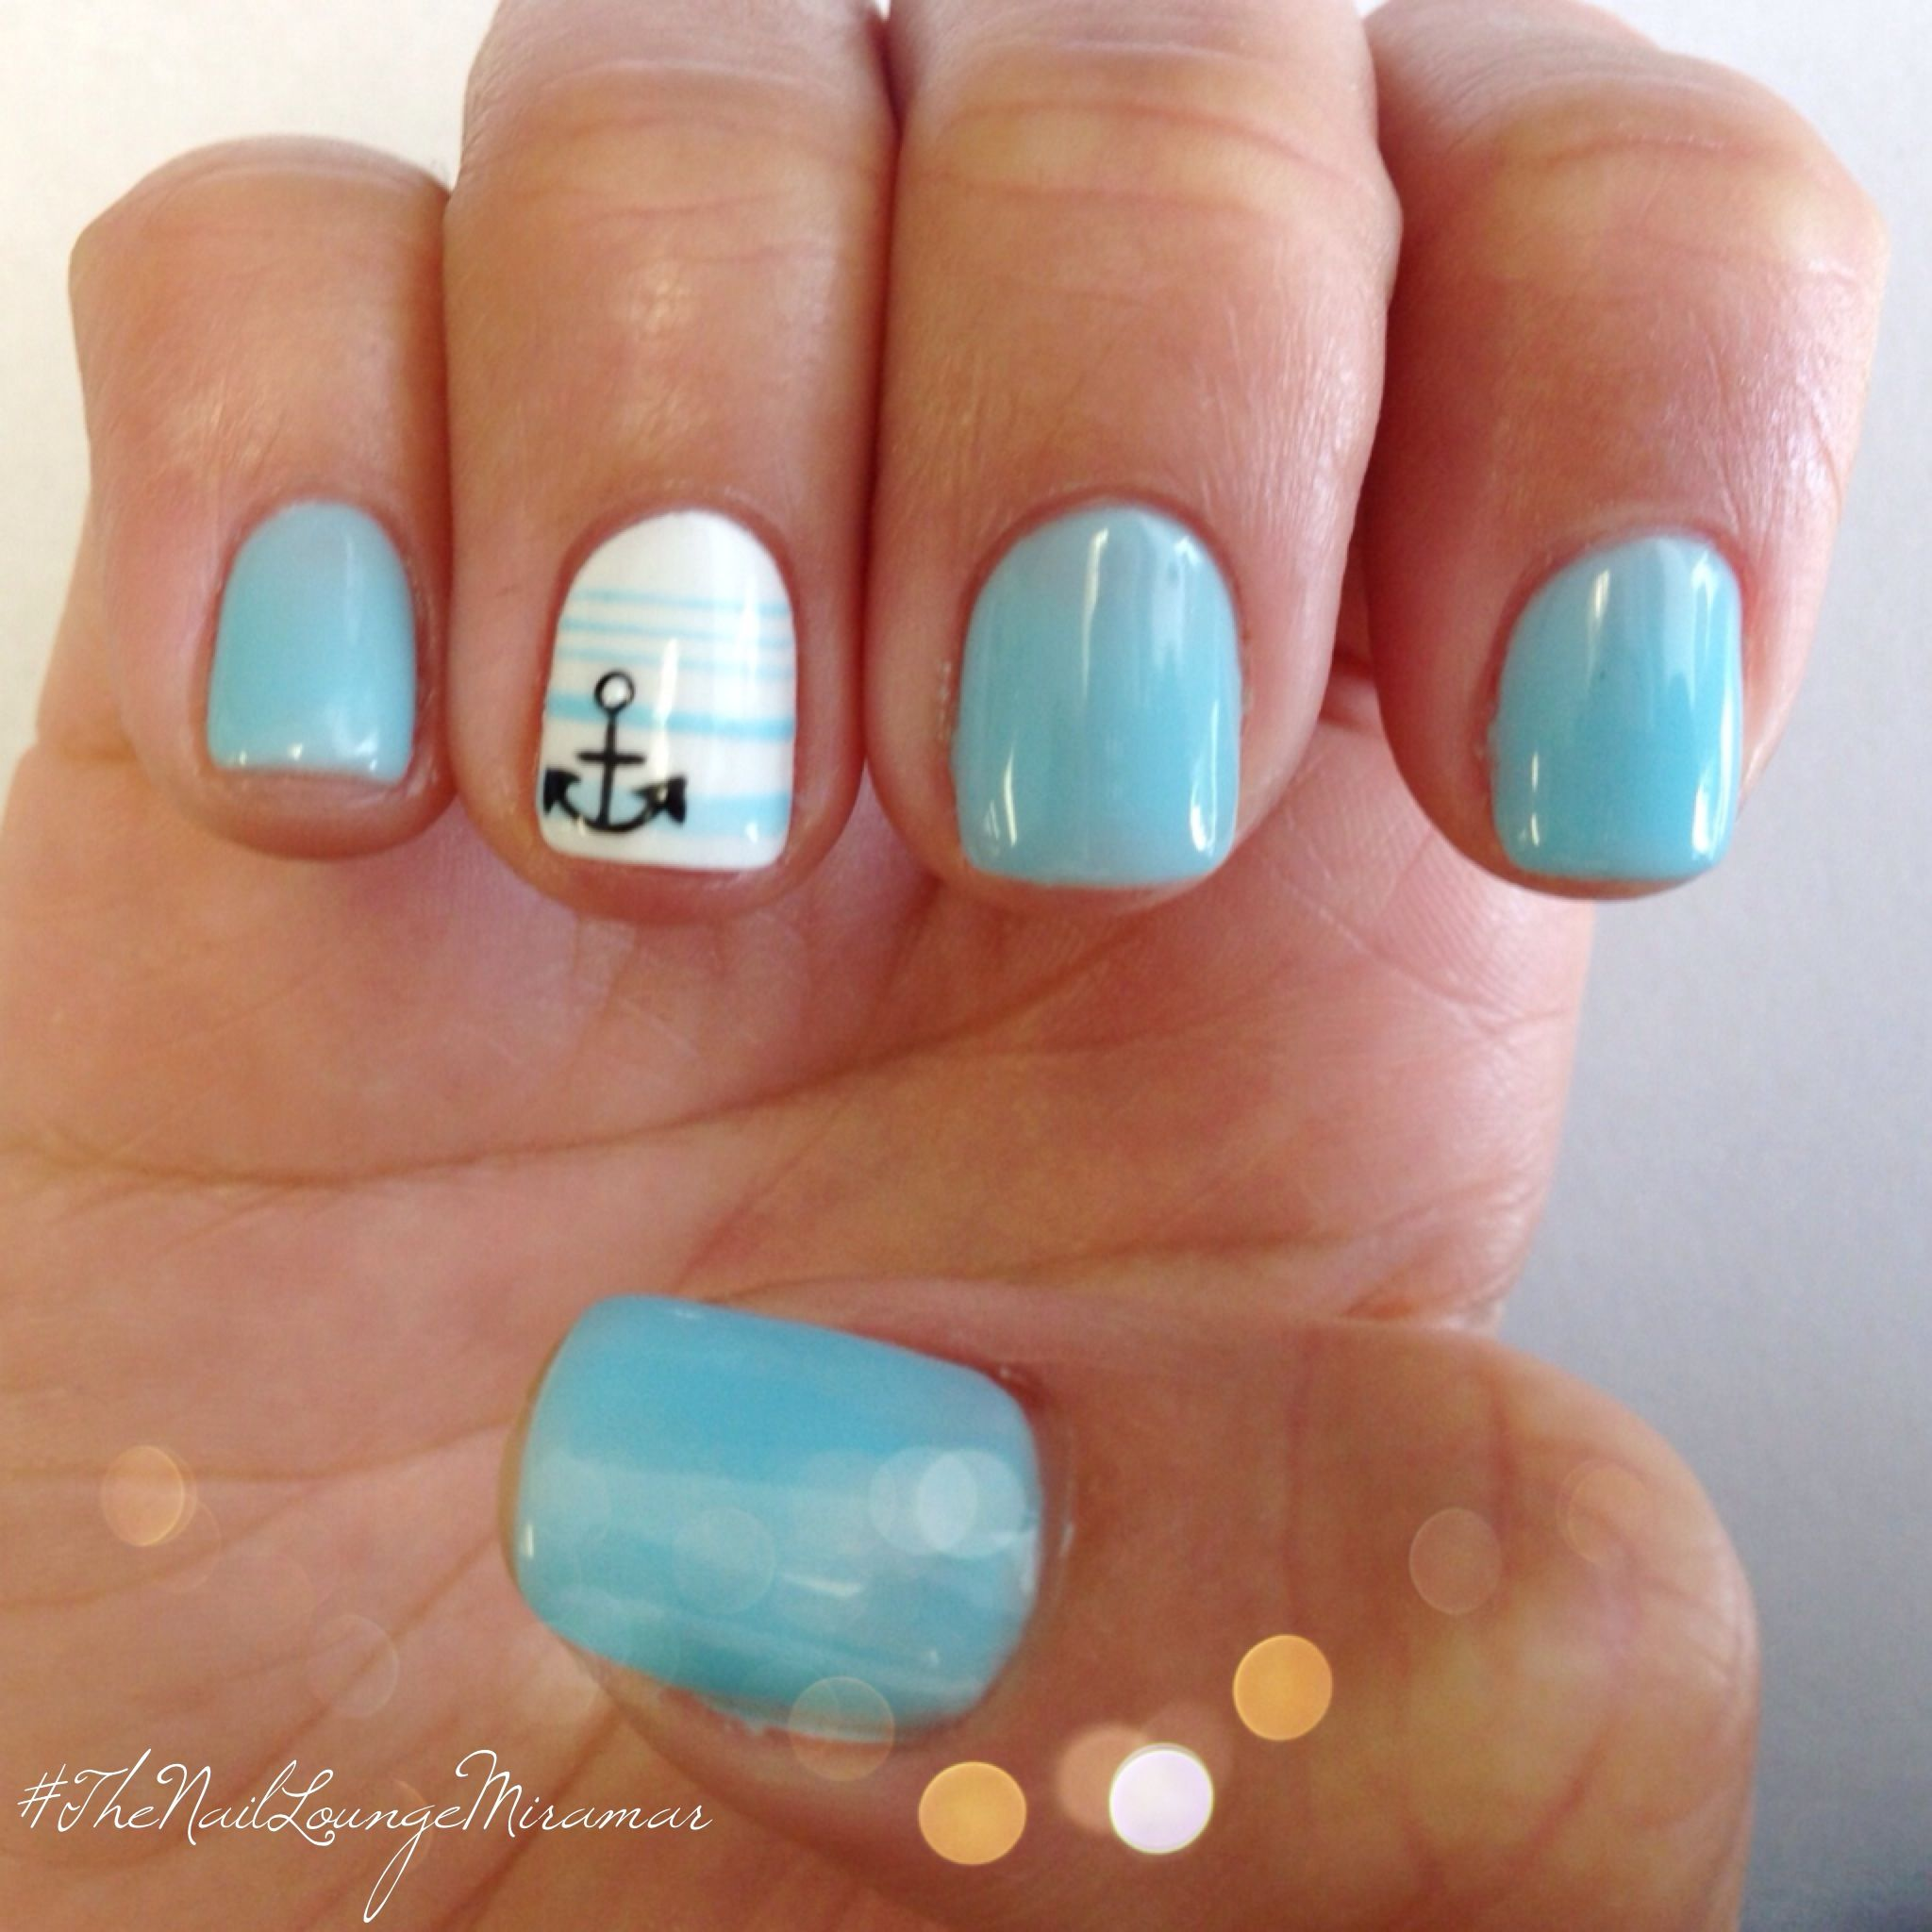 Blue Anchor summer gel nail art | Les cheveux et la beauté | Pinterest